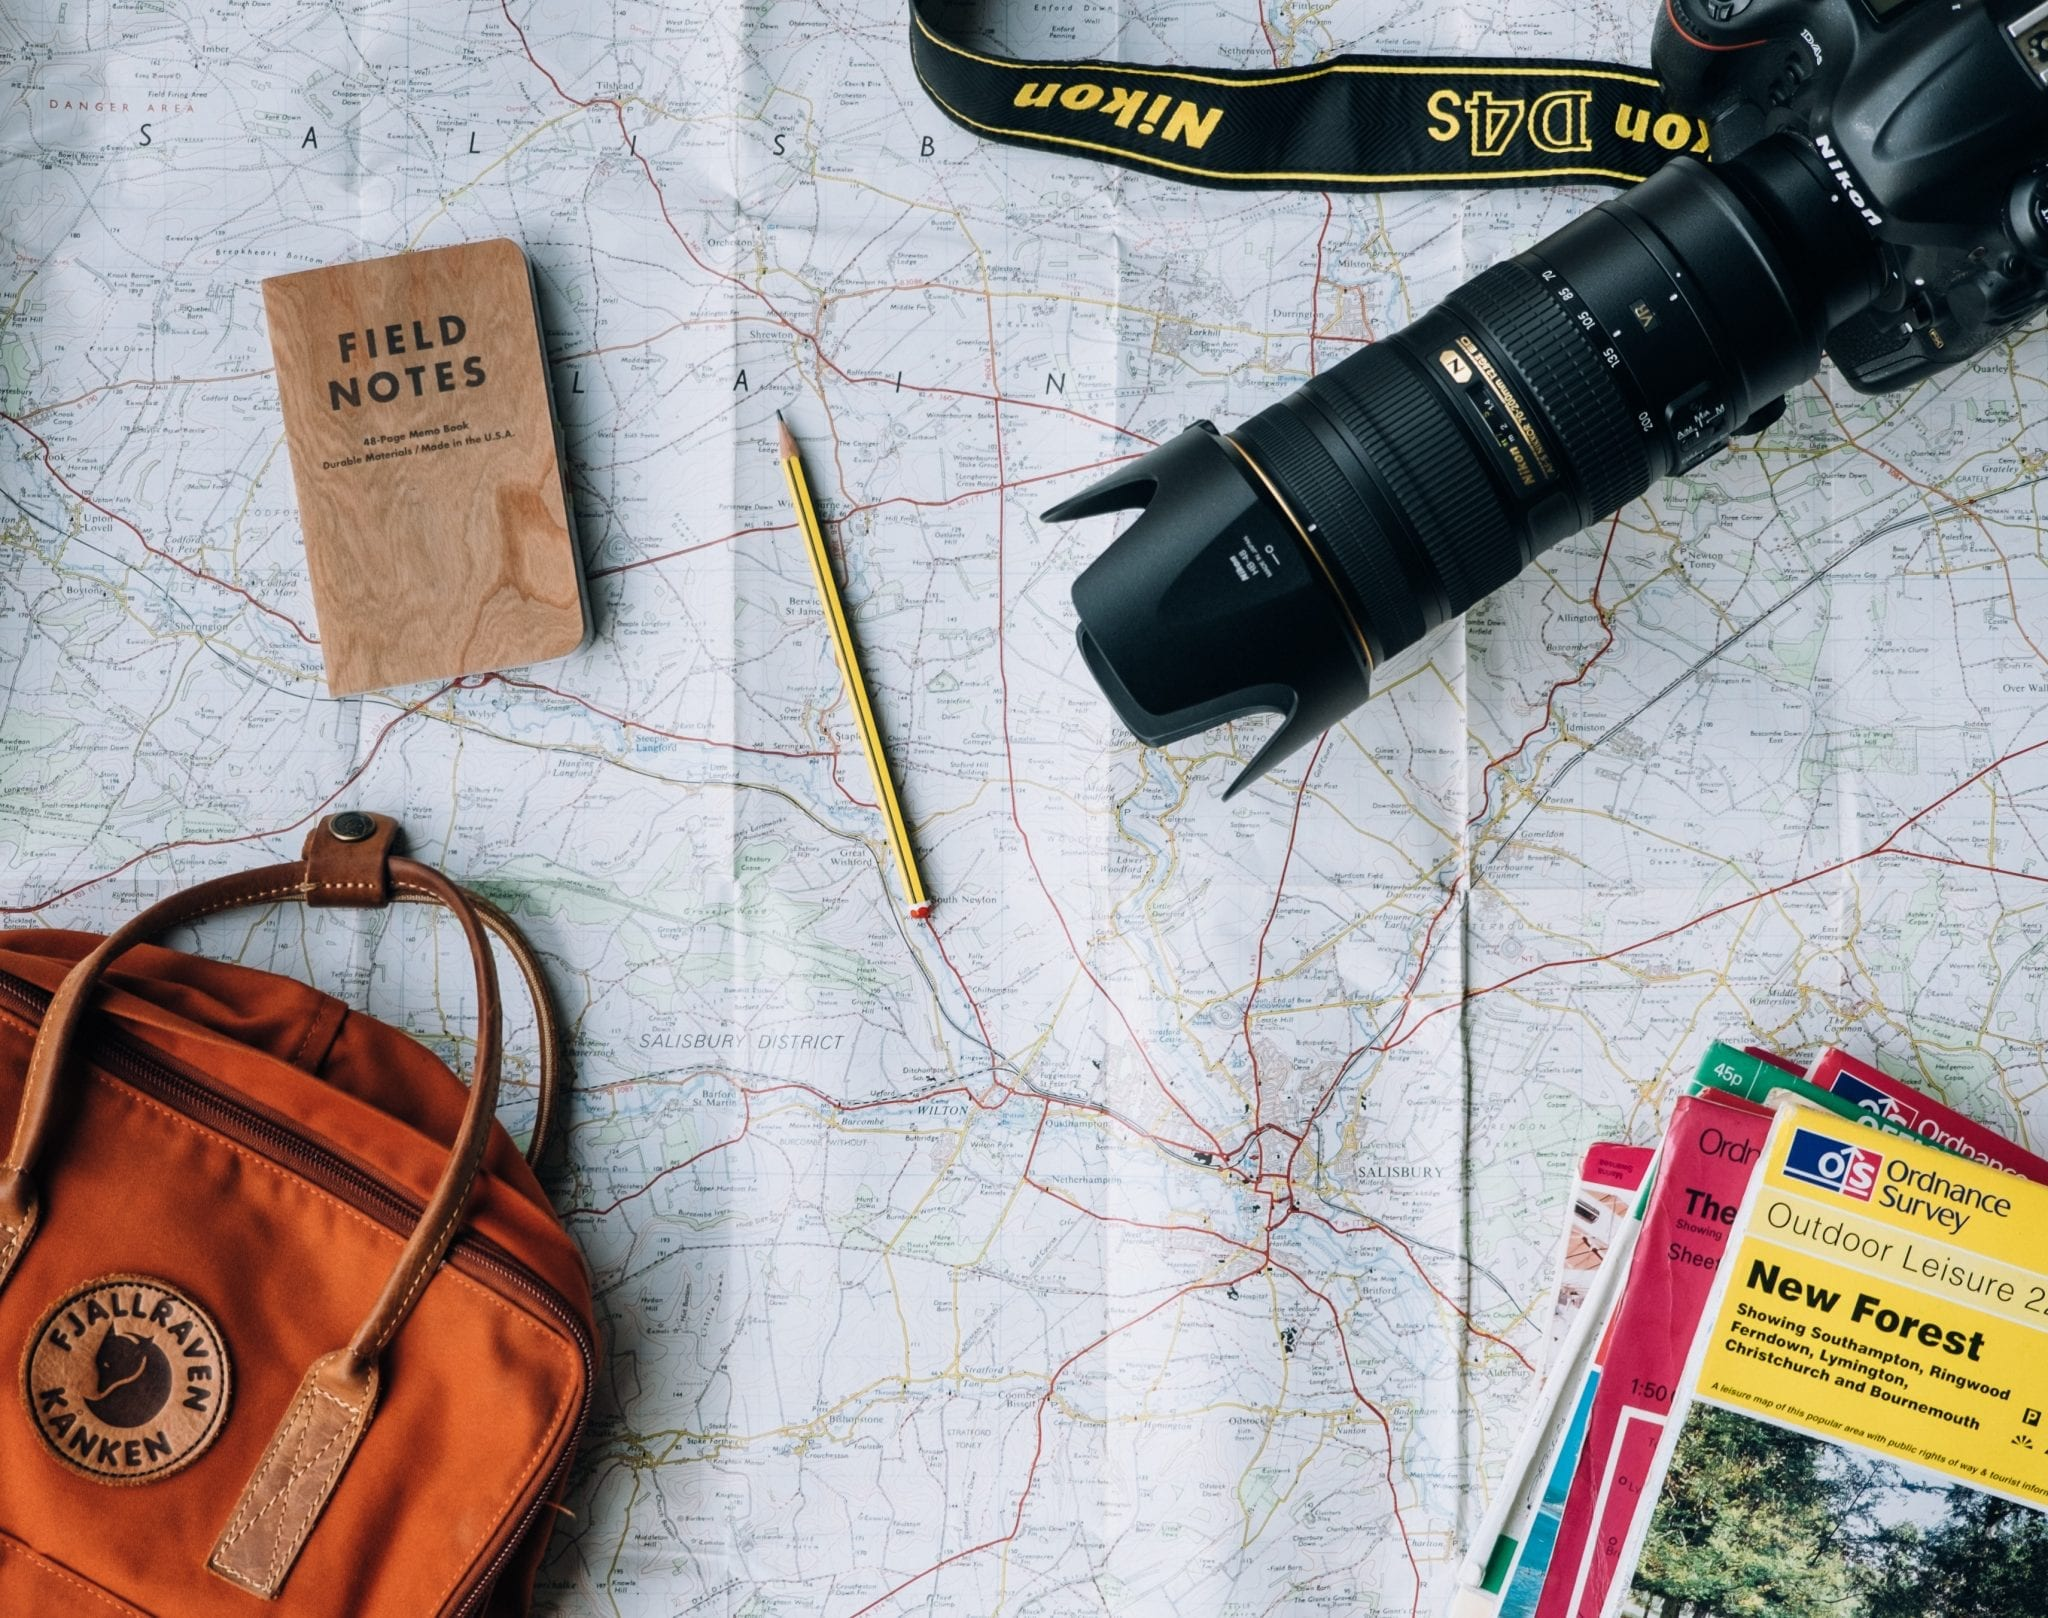 Travel planning items spread on map